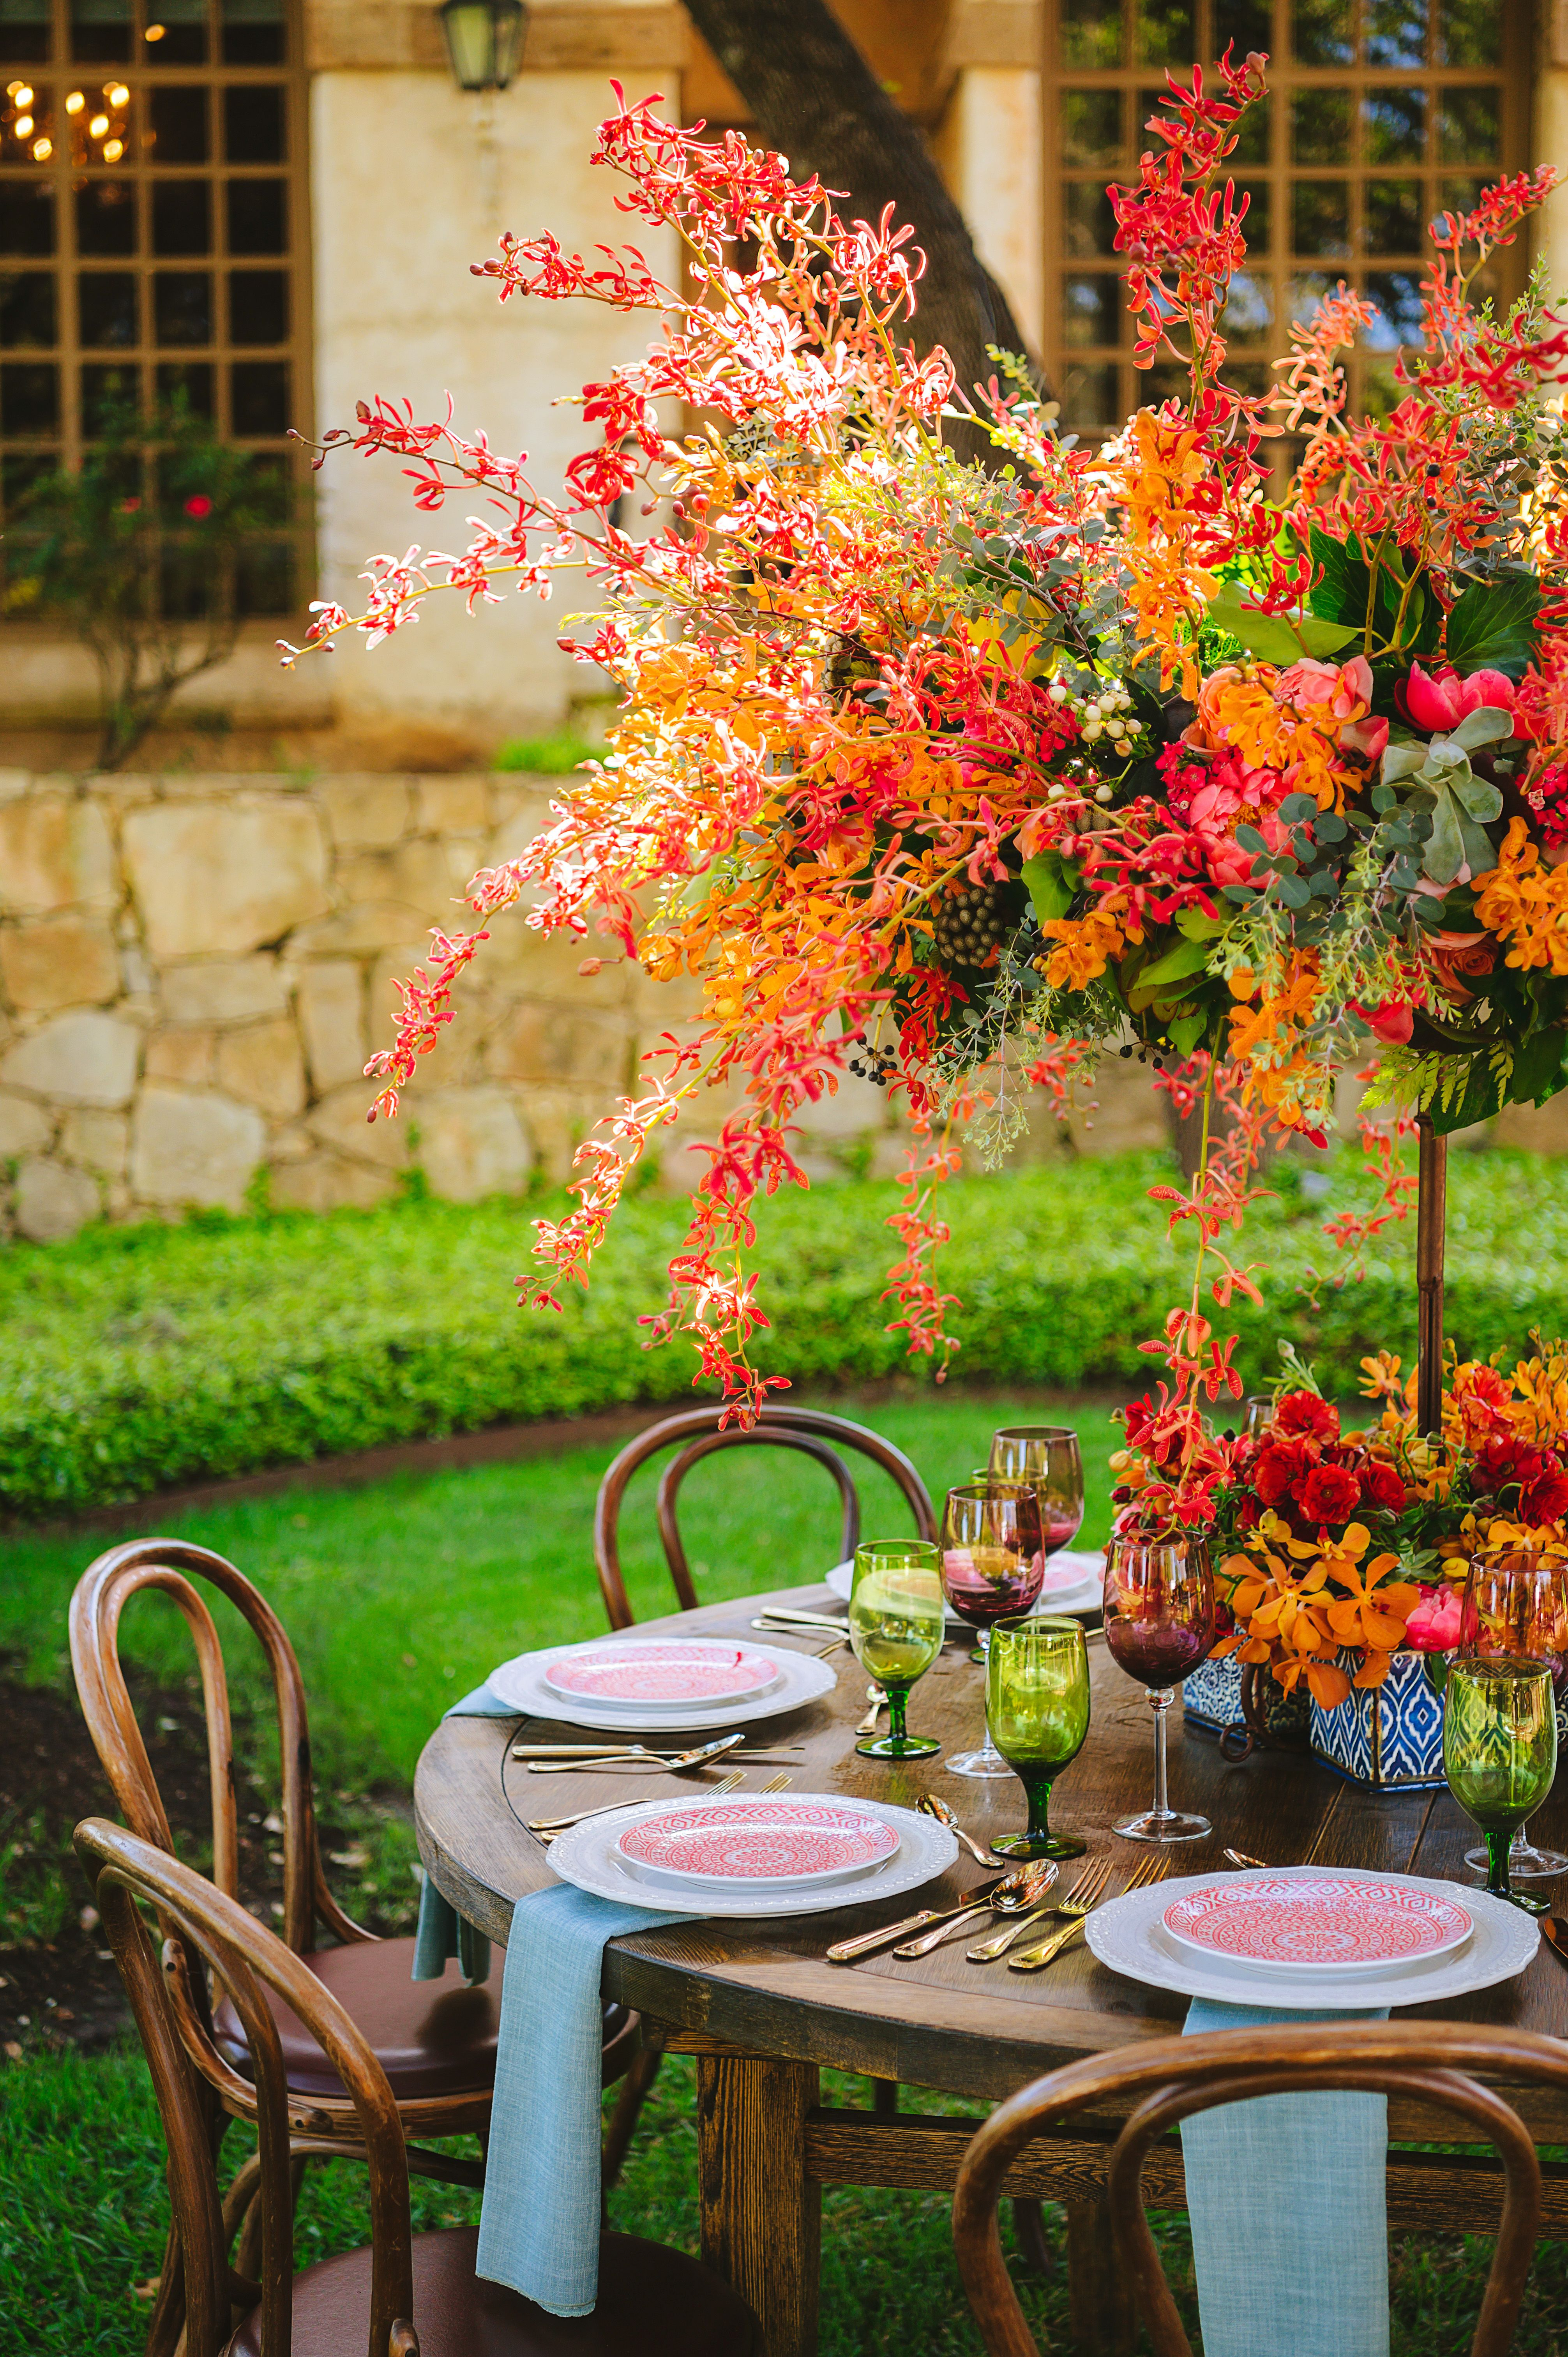 Pink And Orange Wedding Table Decor Inspiration Florals Flair Floral Decor And Rentals In 2020 Gorgeous Centerpieces Wedding Table Decorations Table Decorations